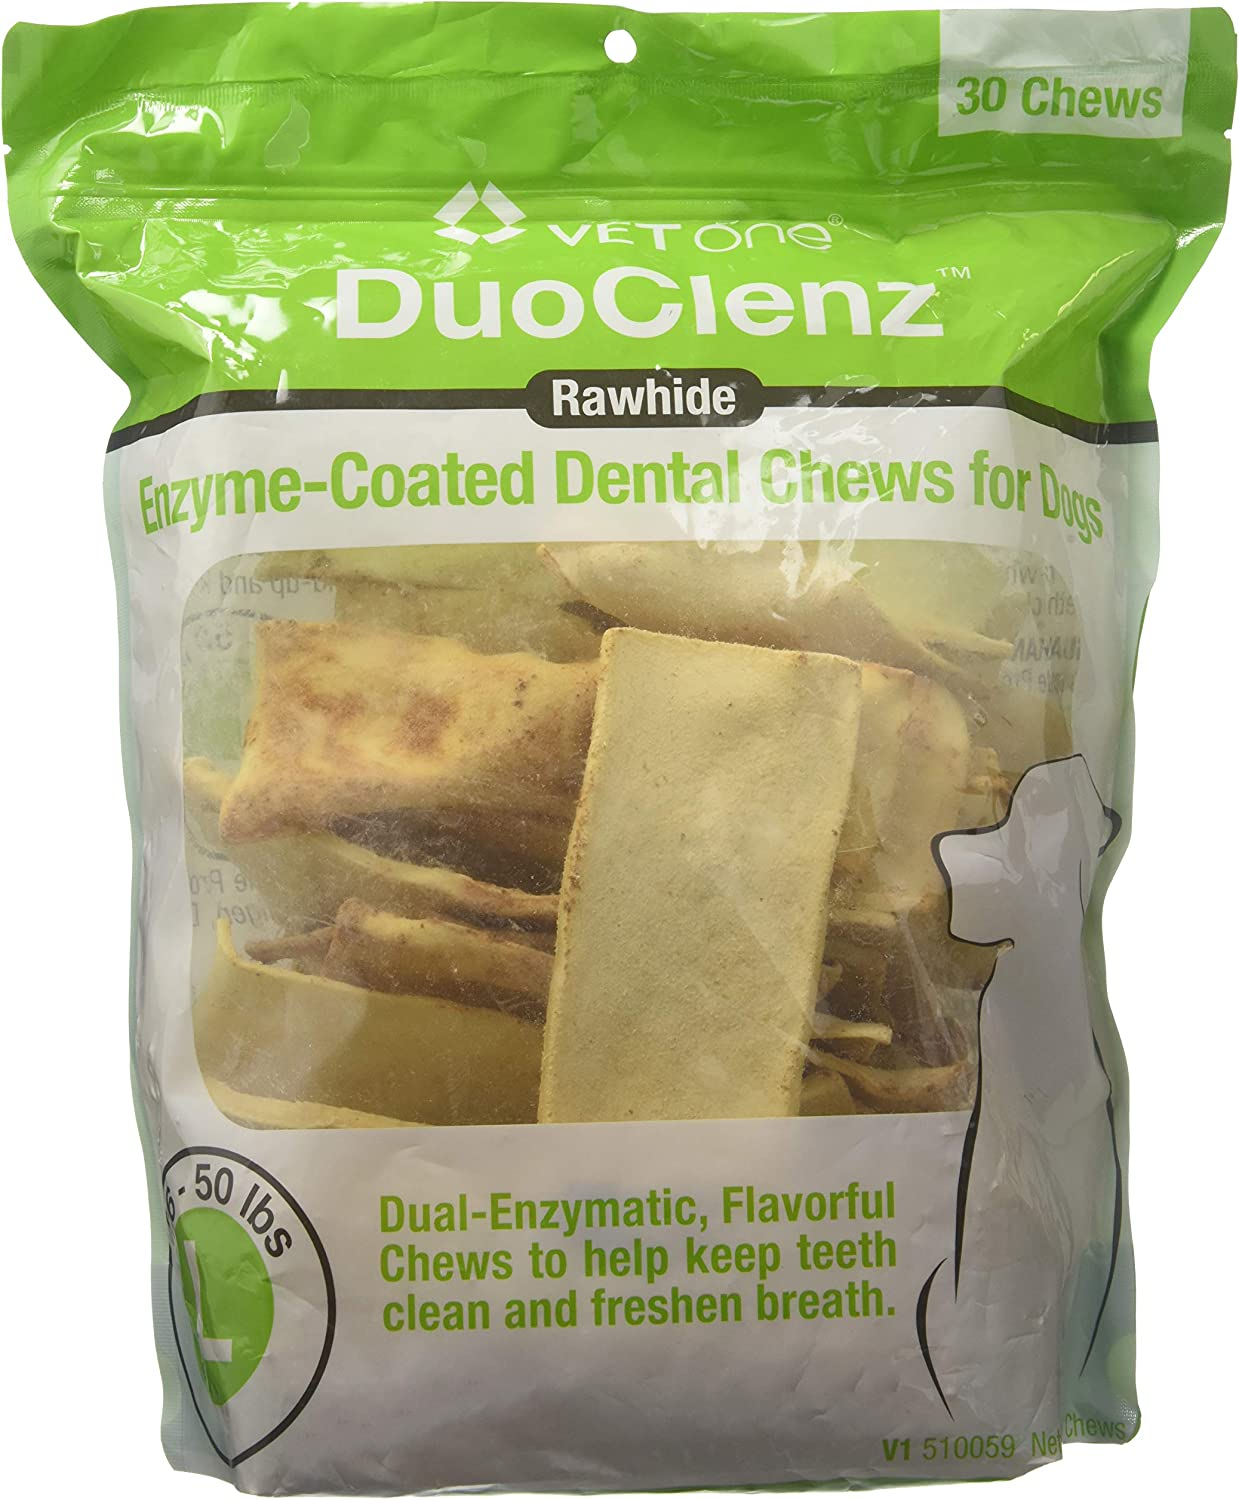 VetOne DuoClenz Enzyme Coated Dog Dental Chews for Large Dogs - Veterinarian Formulated - 30 Count